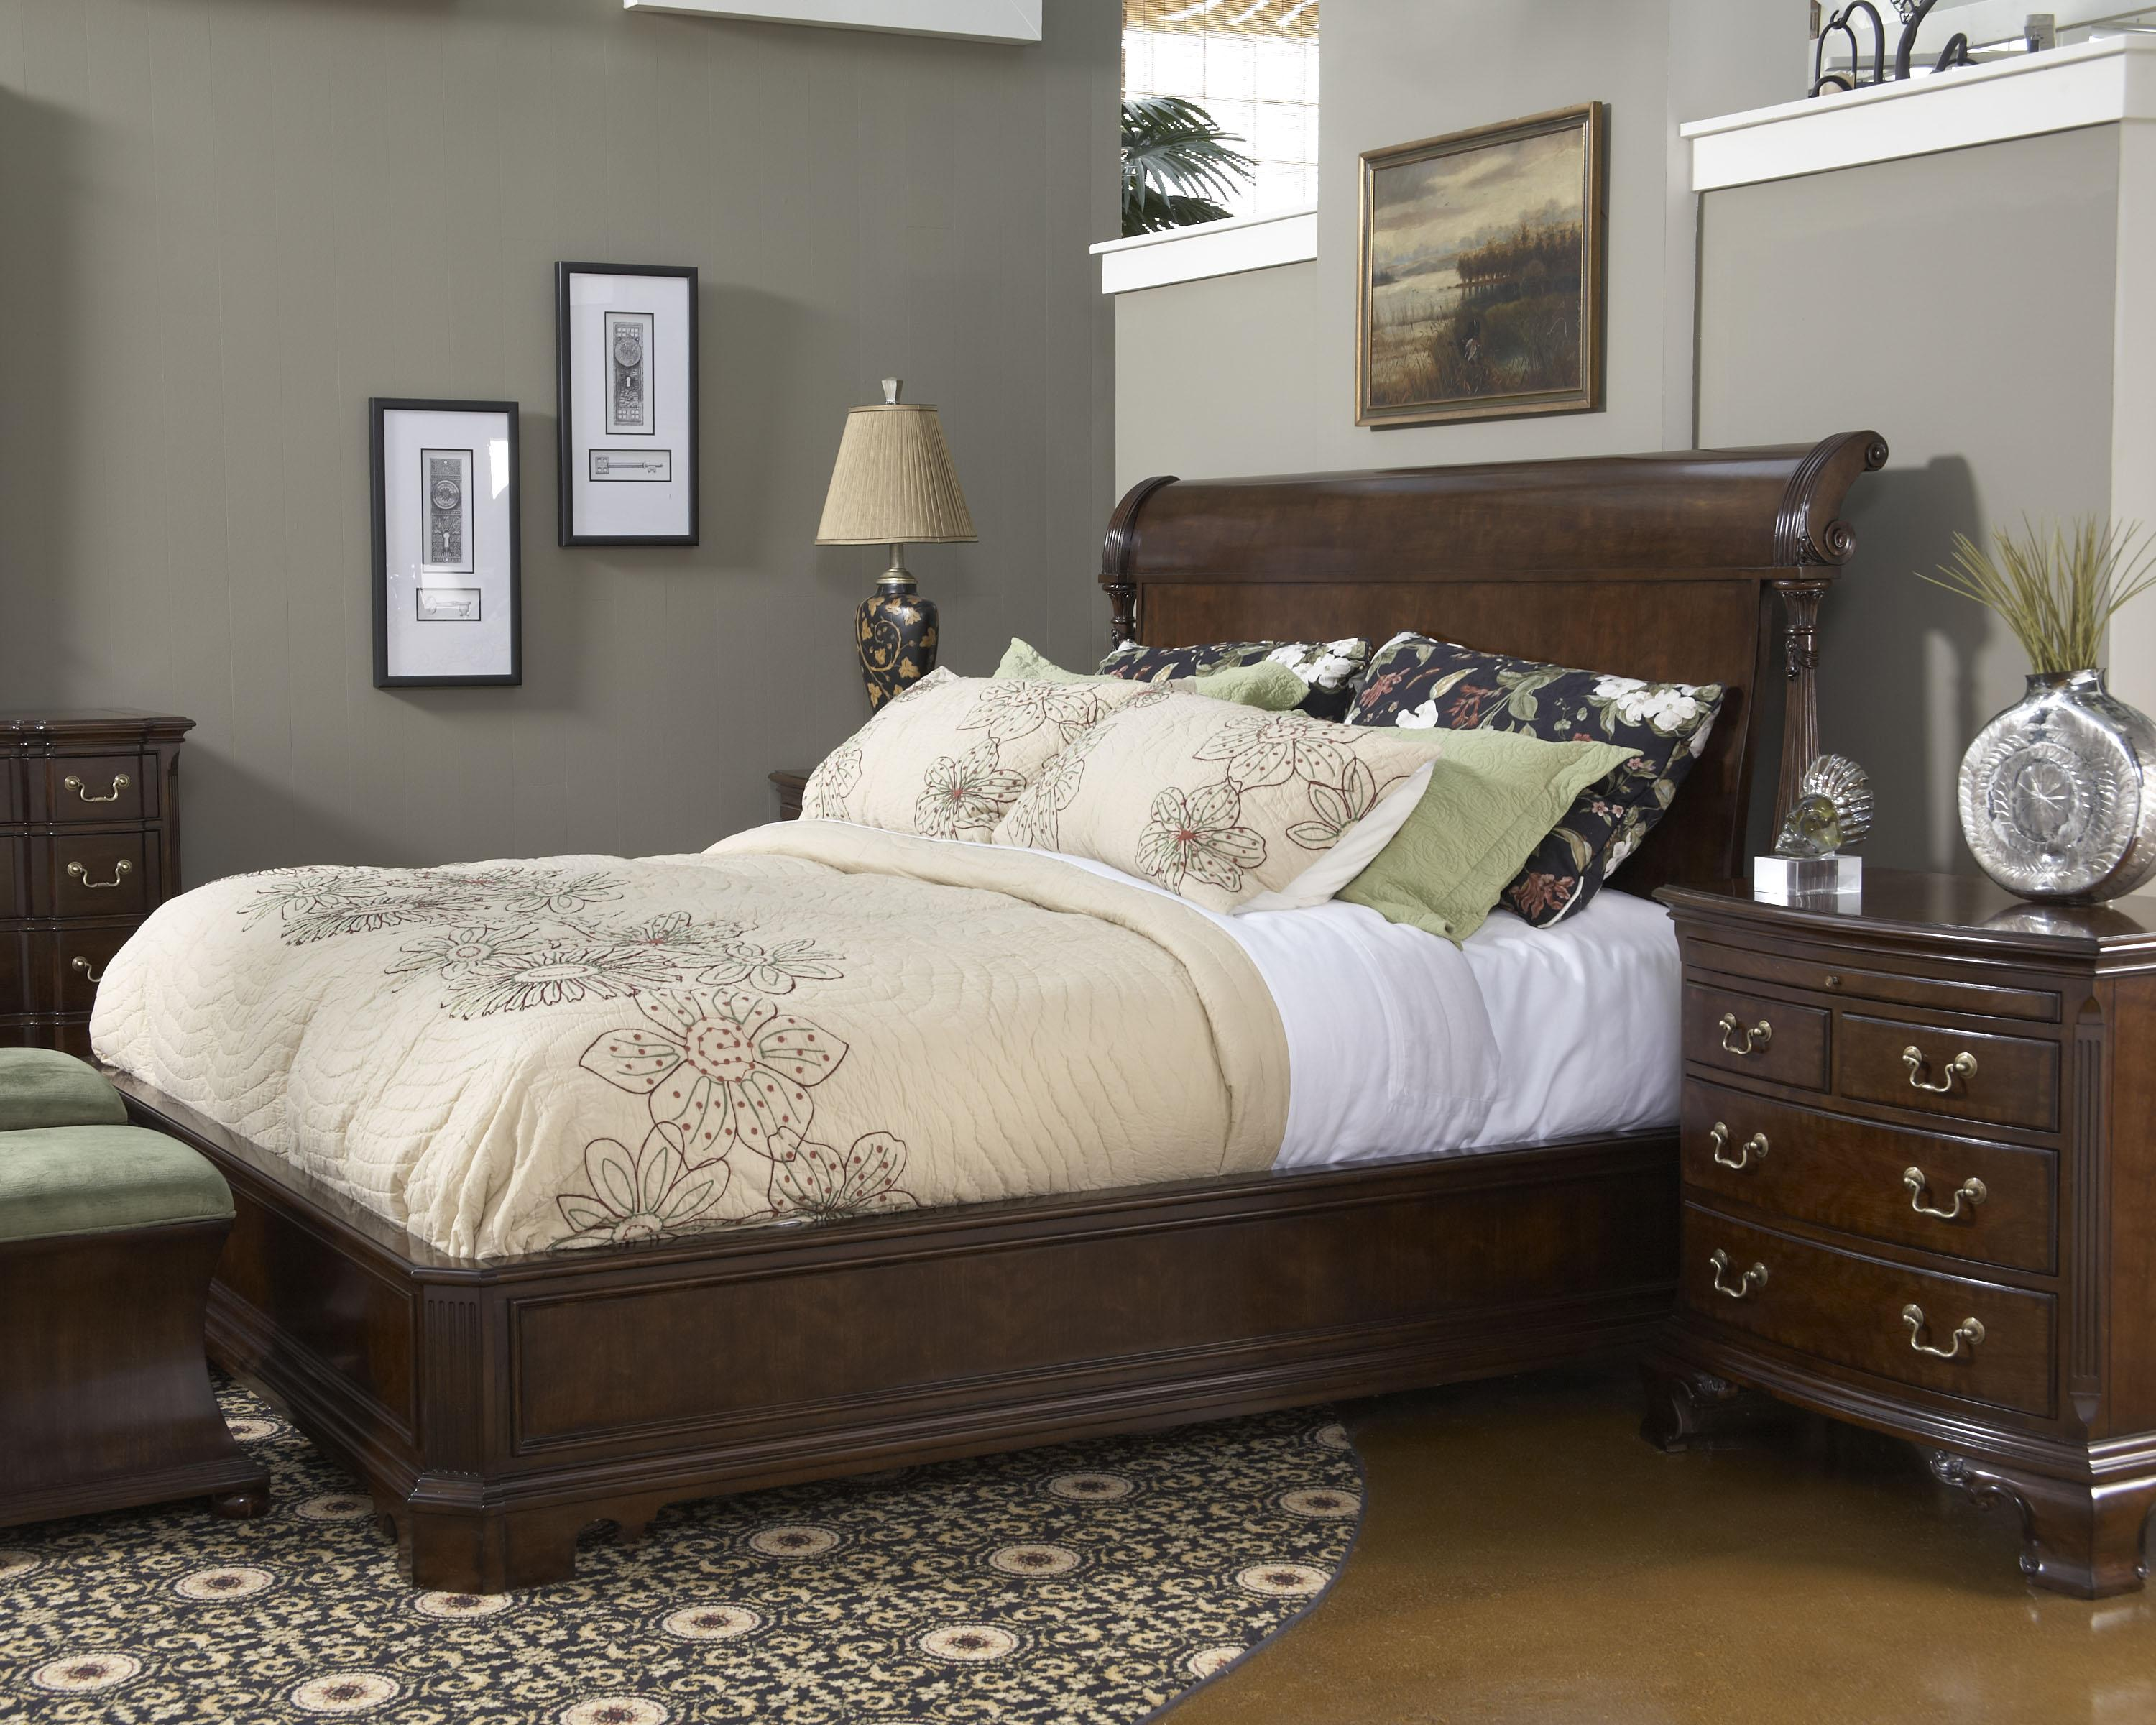 King Size Charleston Platform Panel Bed With Rounded Headboard By Fine Furniture Design Wolf